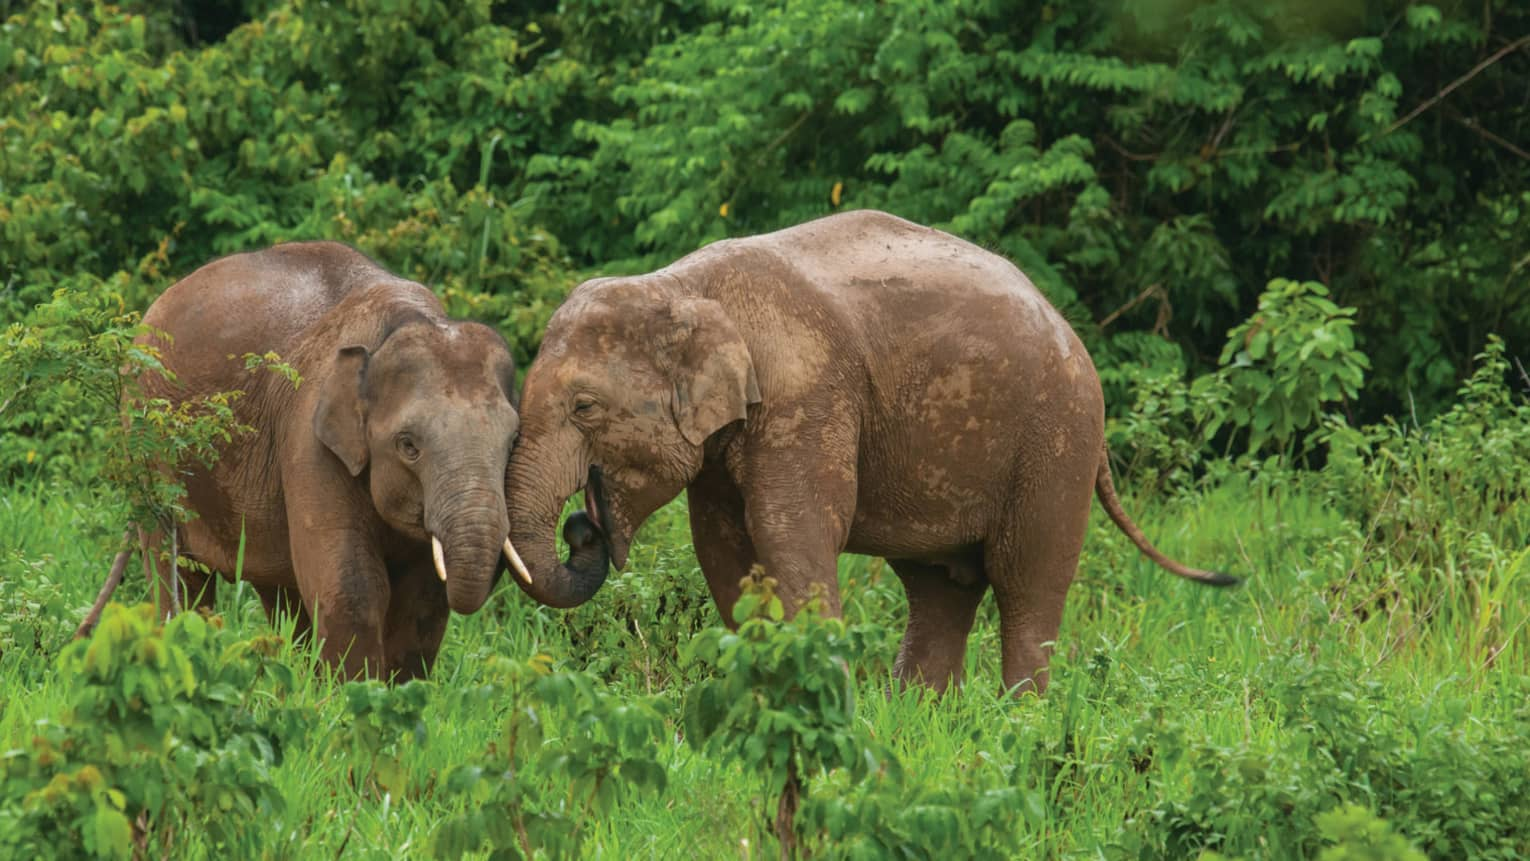 Two elephants nuzzle next to one another in green forest